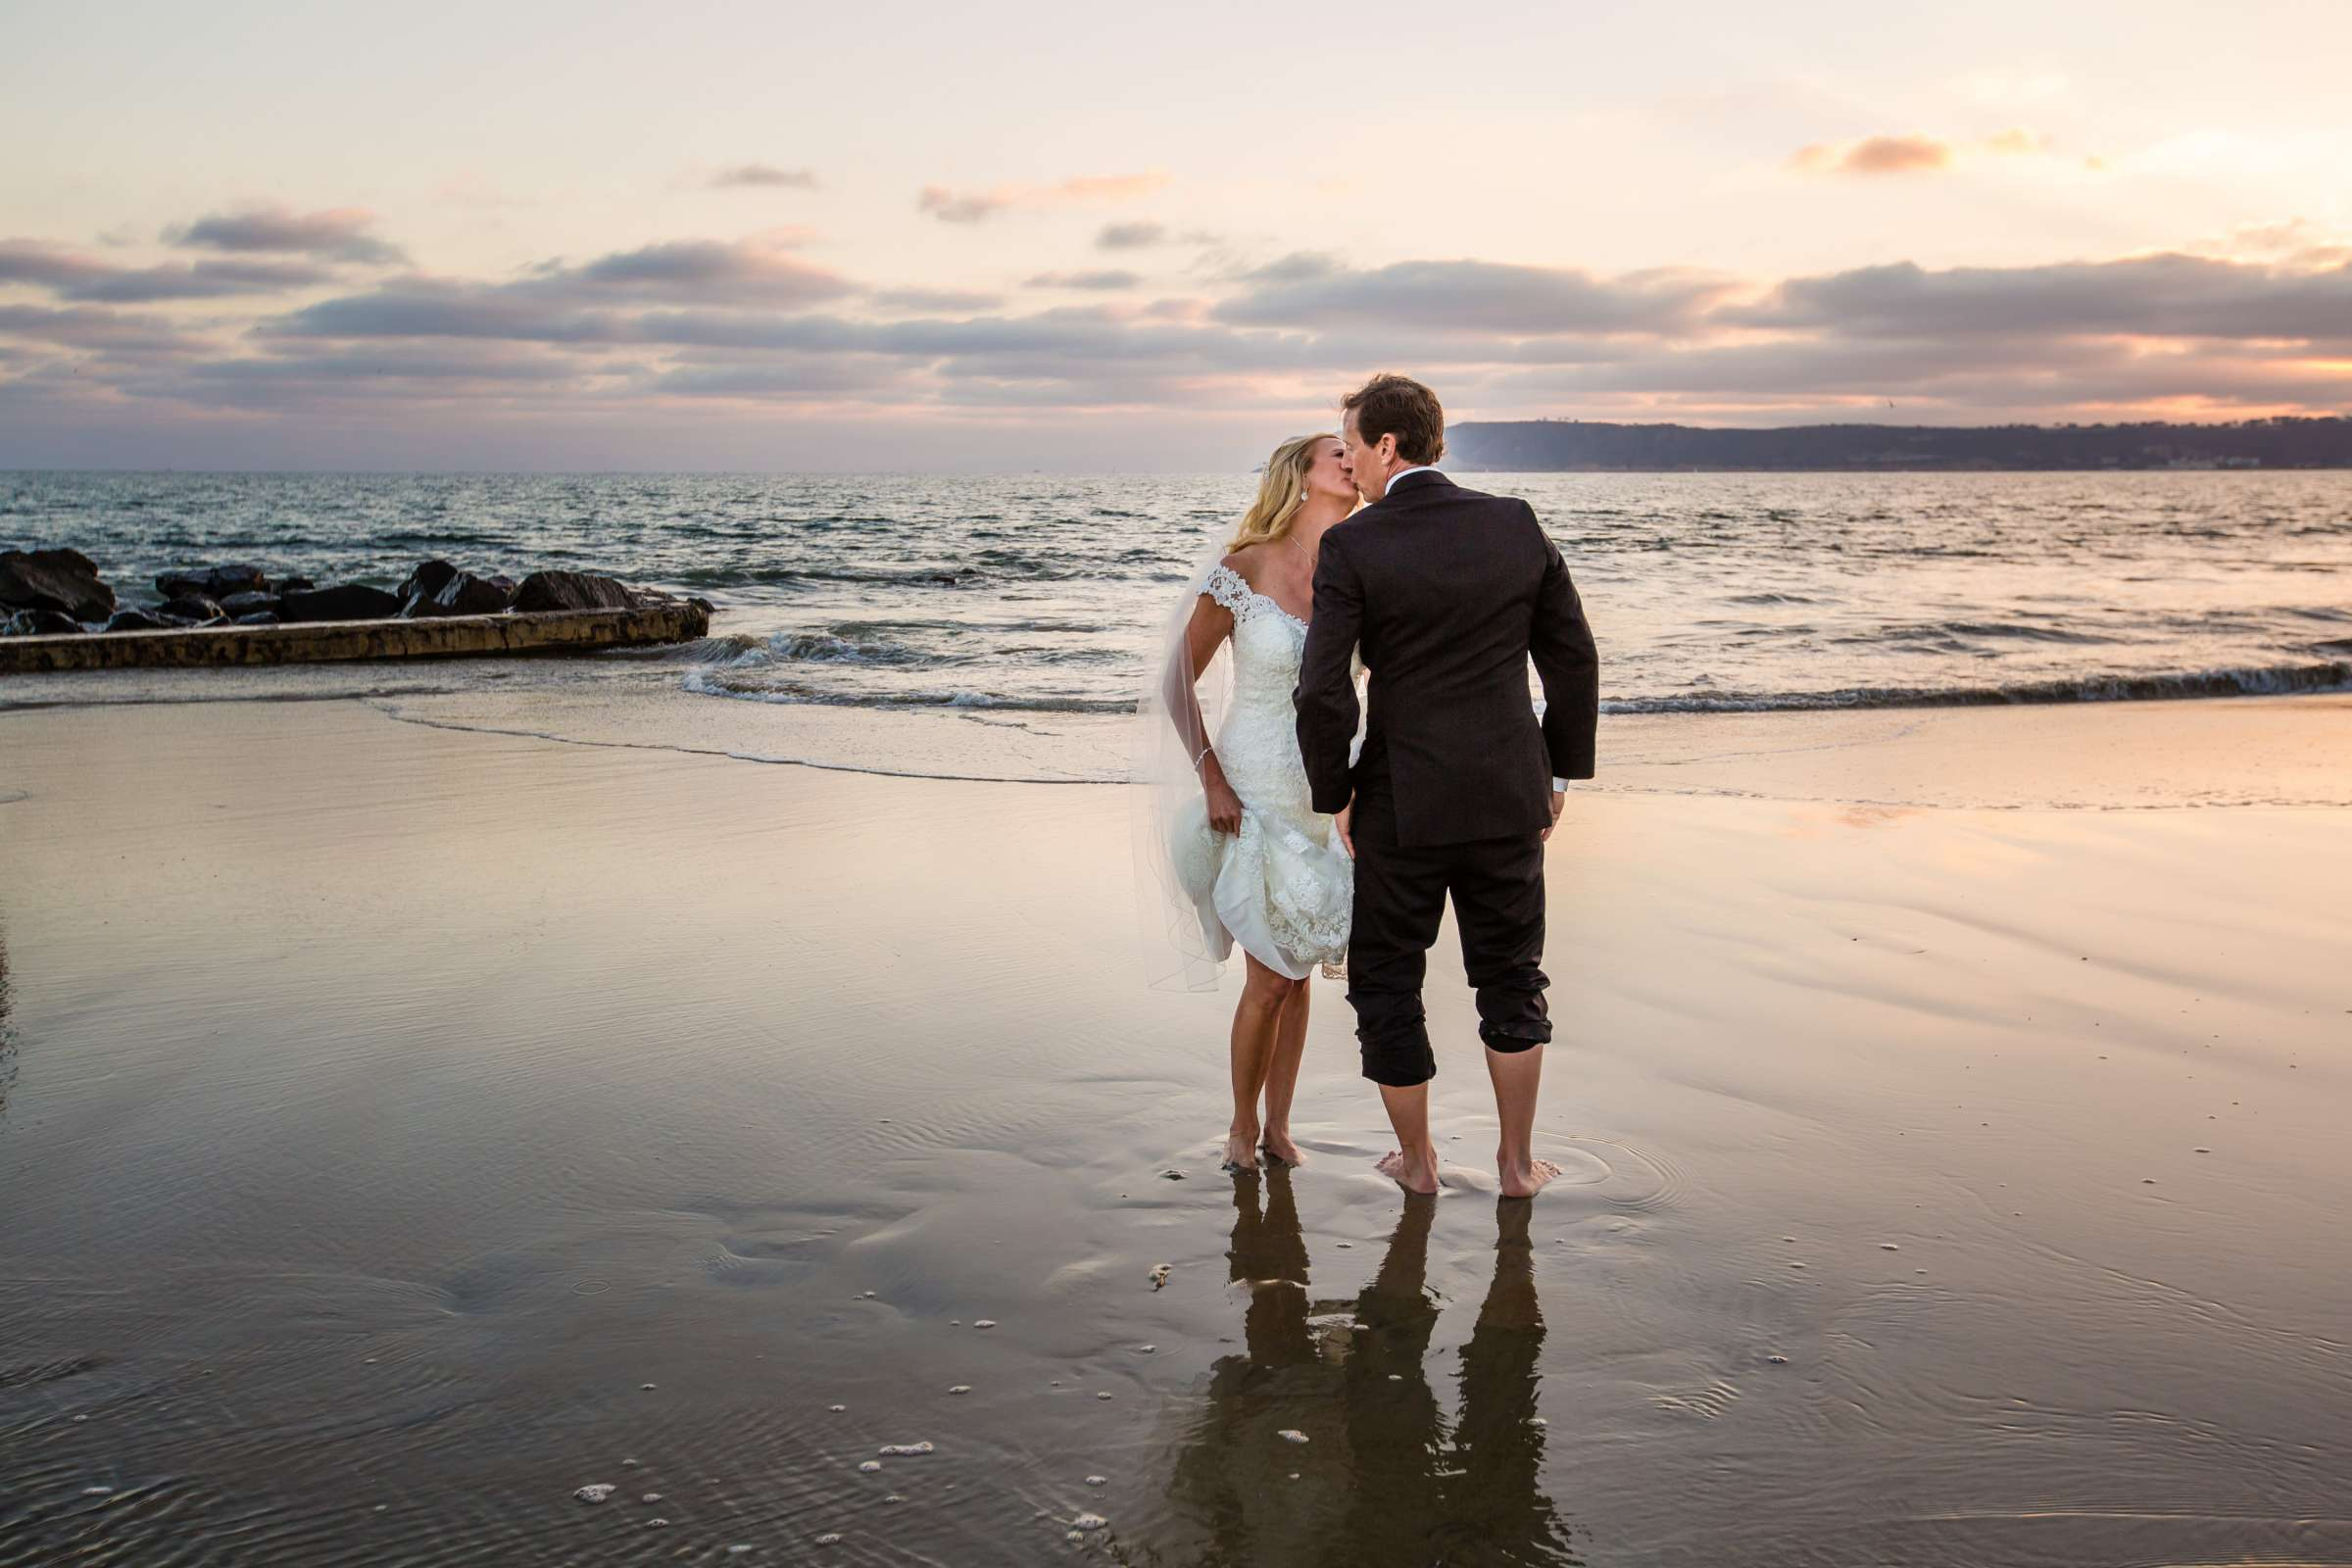 Hotel Del Coronado Wedding coordinated by Creative Affairs Inc, Diane and Paul Wedding Photo #79 by True Photography